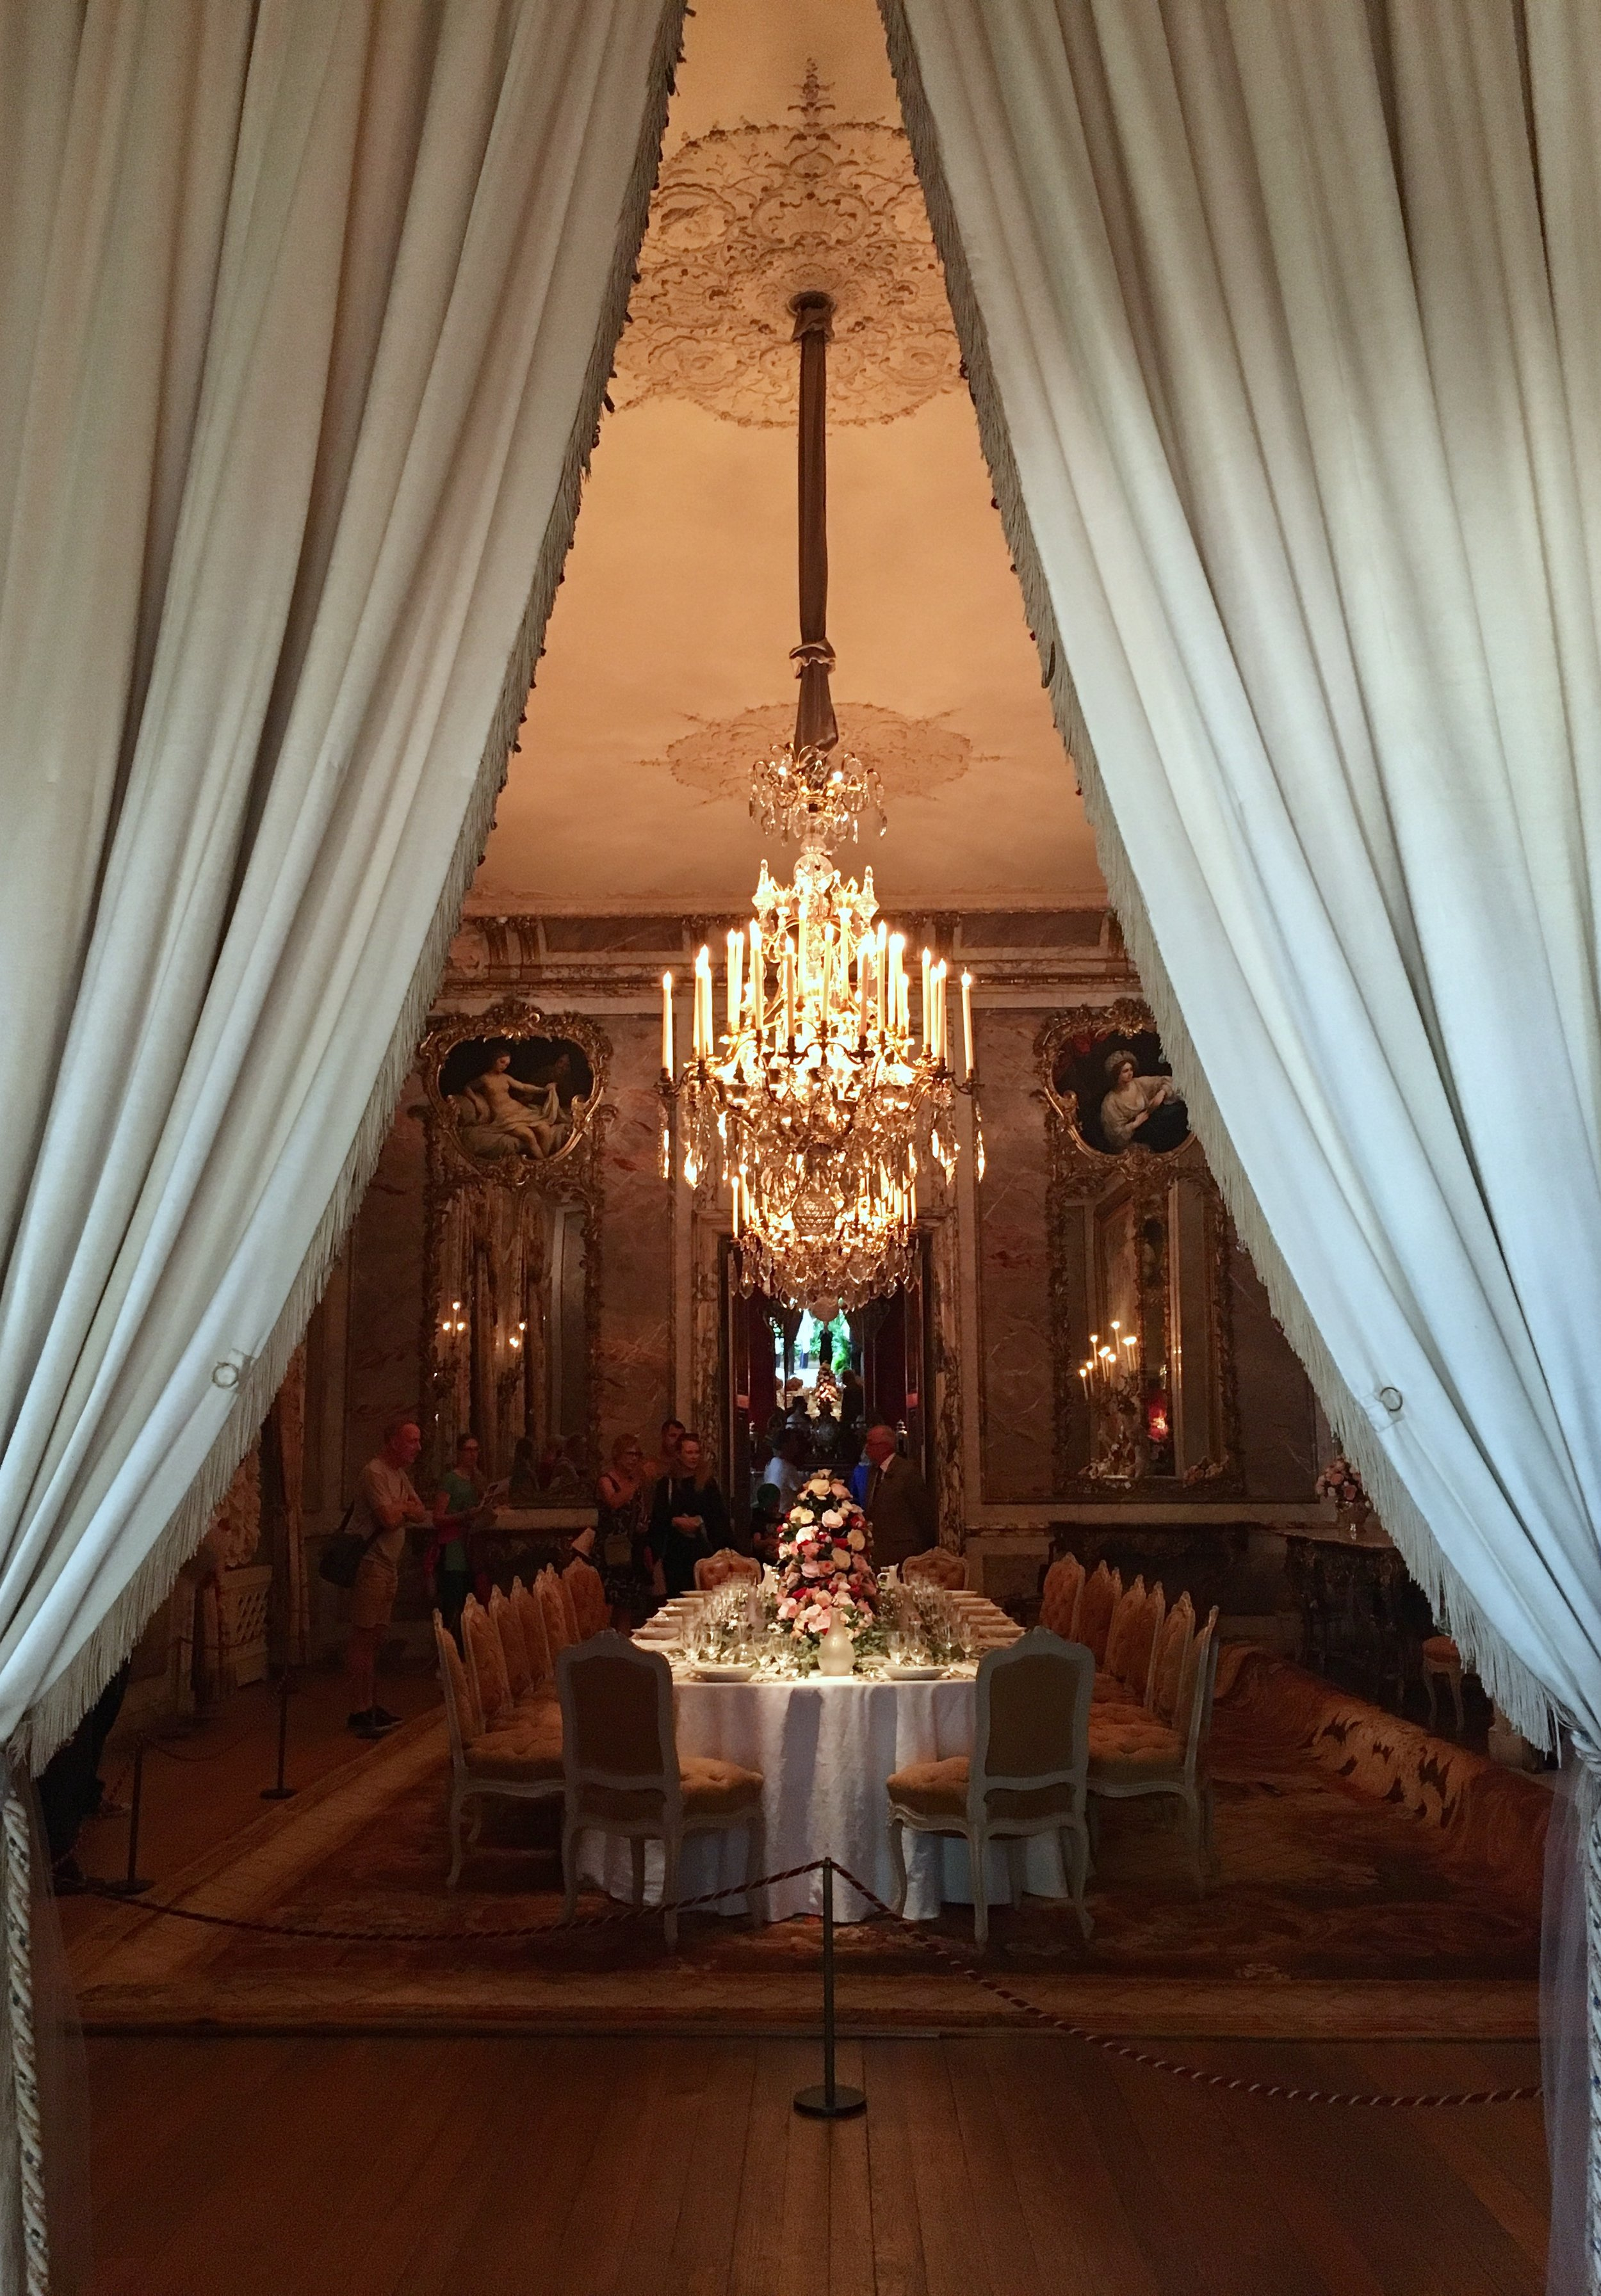 UK Waddesdon Manor Dining Room curtain National Trust French Chateau Rothschild Buckinghamshire garden chateau Eileen Hsieh Follow That Bug .jpg